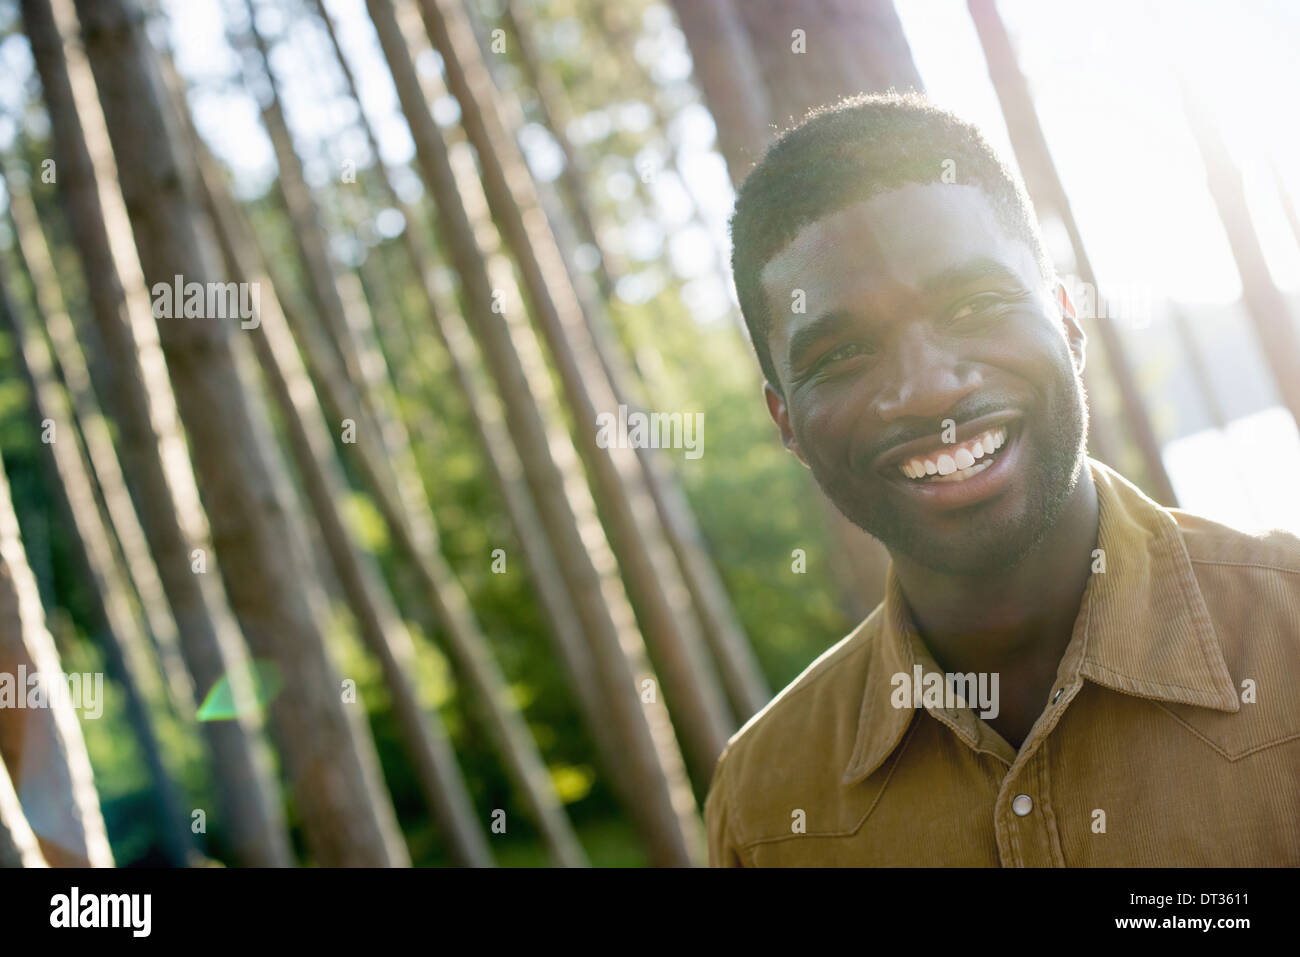 A man smiling at the camera under the shade of trees in summer - Stock Image